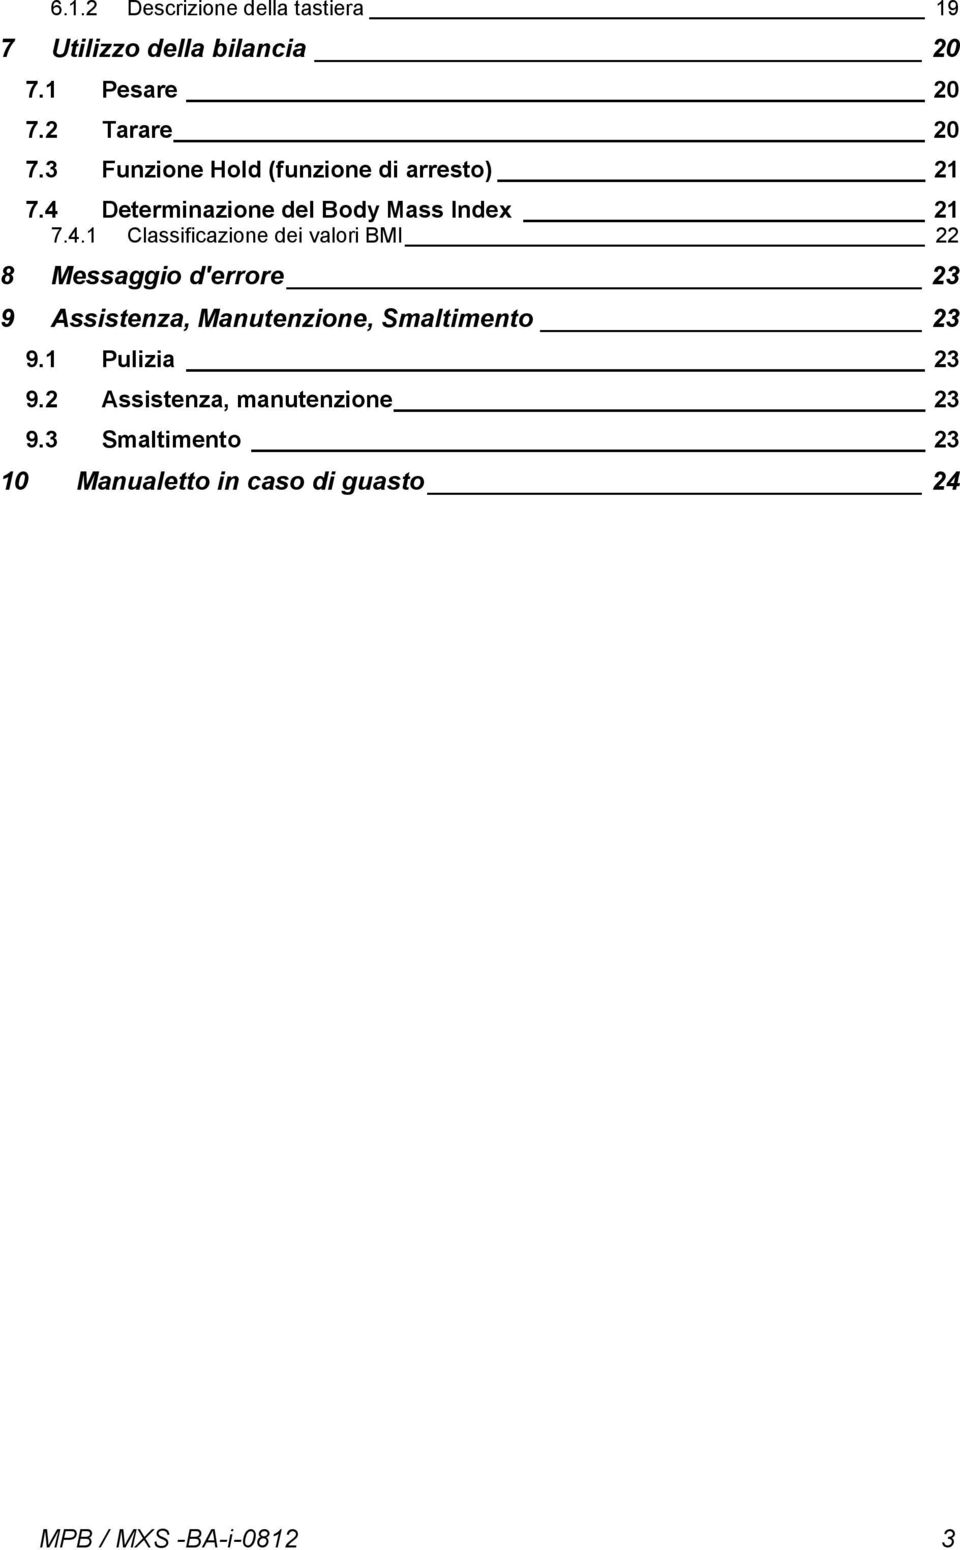 Determinazione del Body Mass Index 21 7.4.